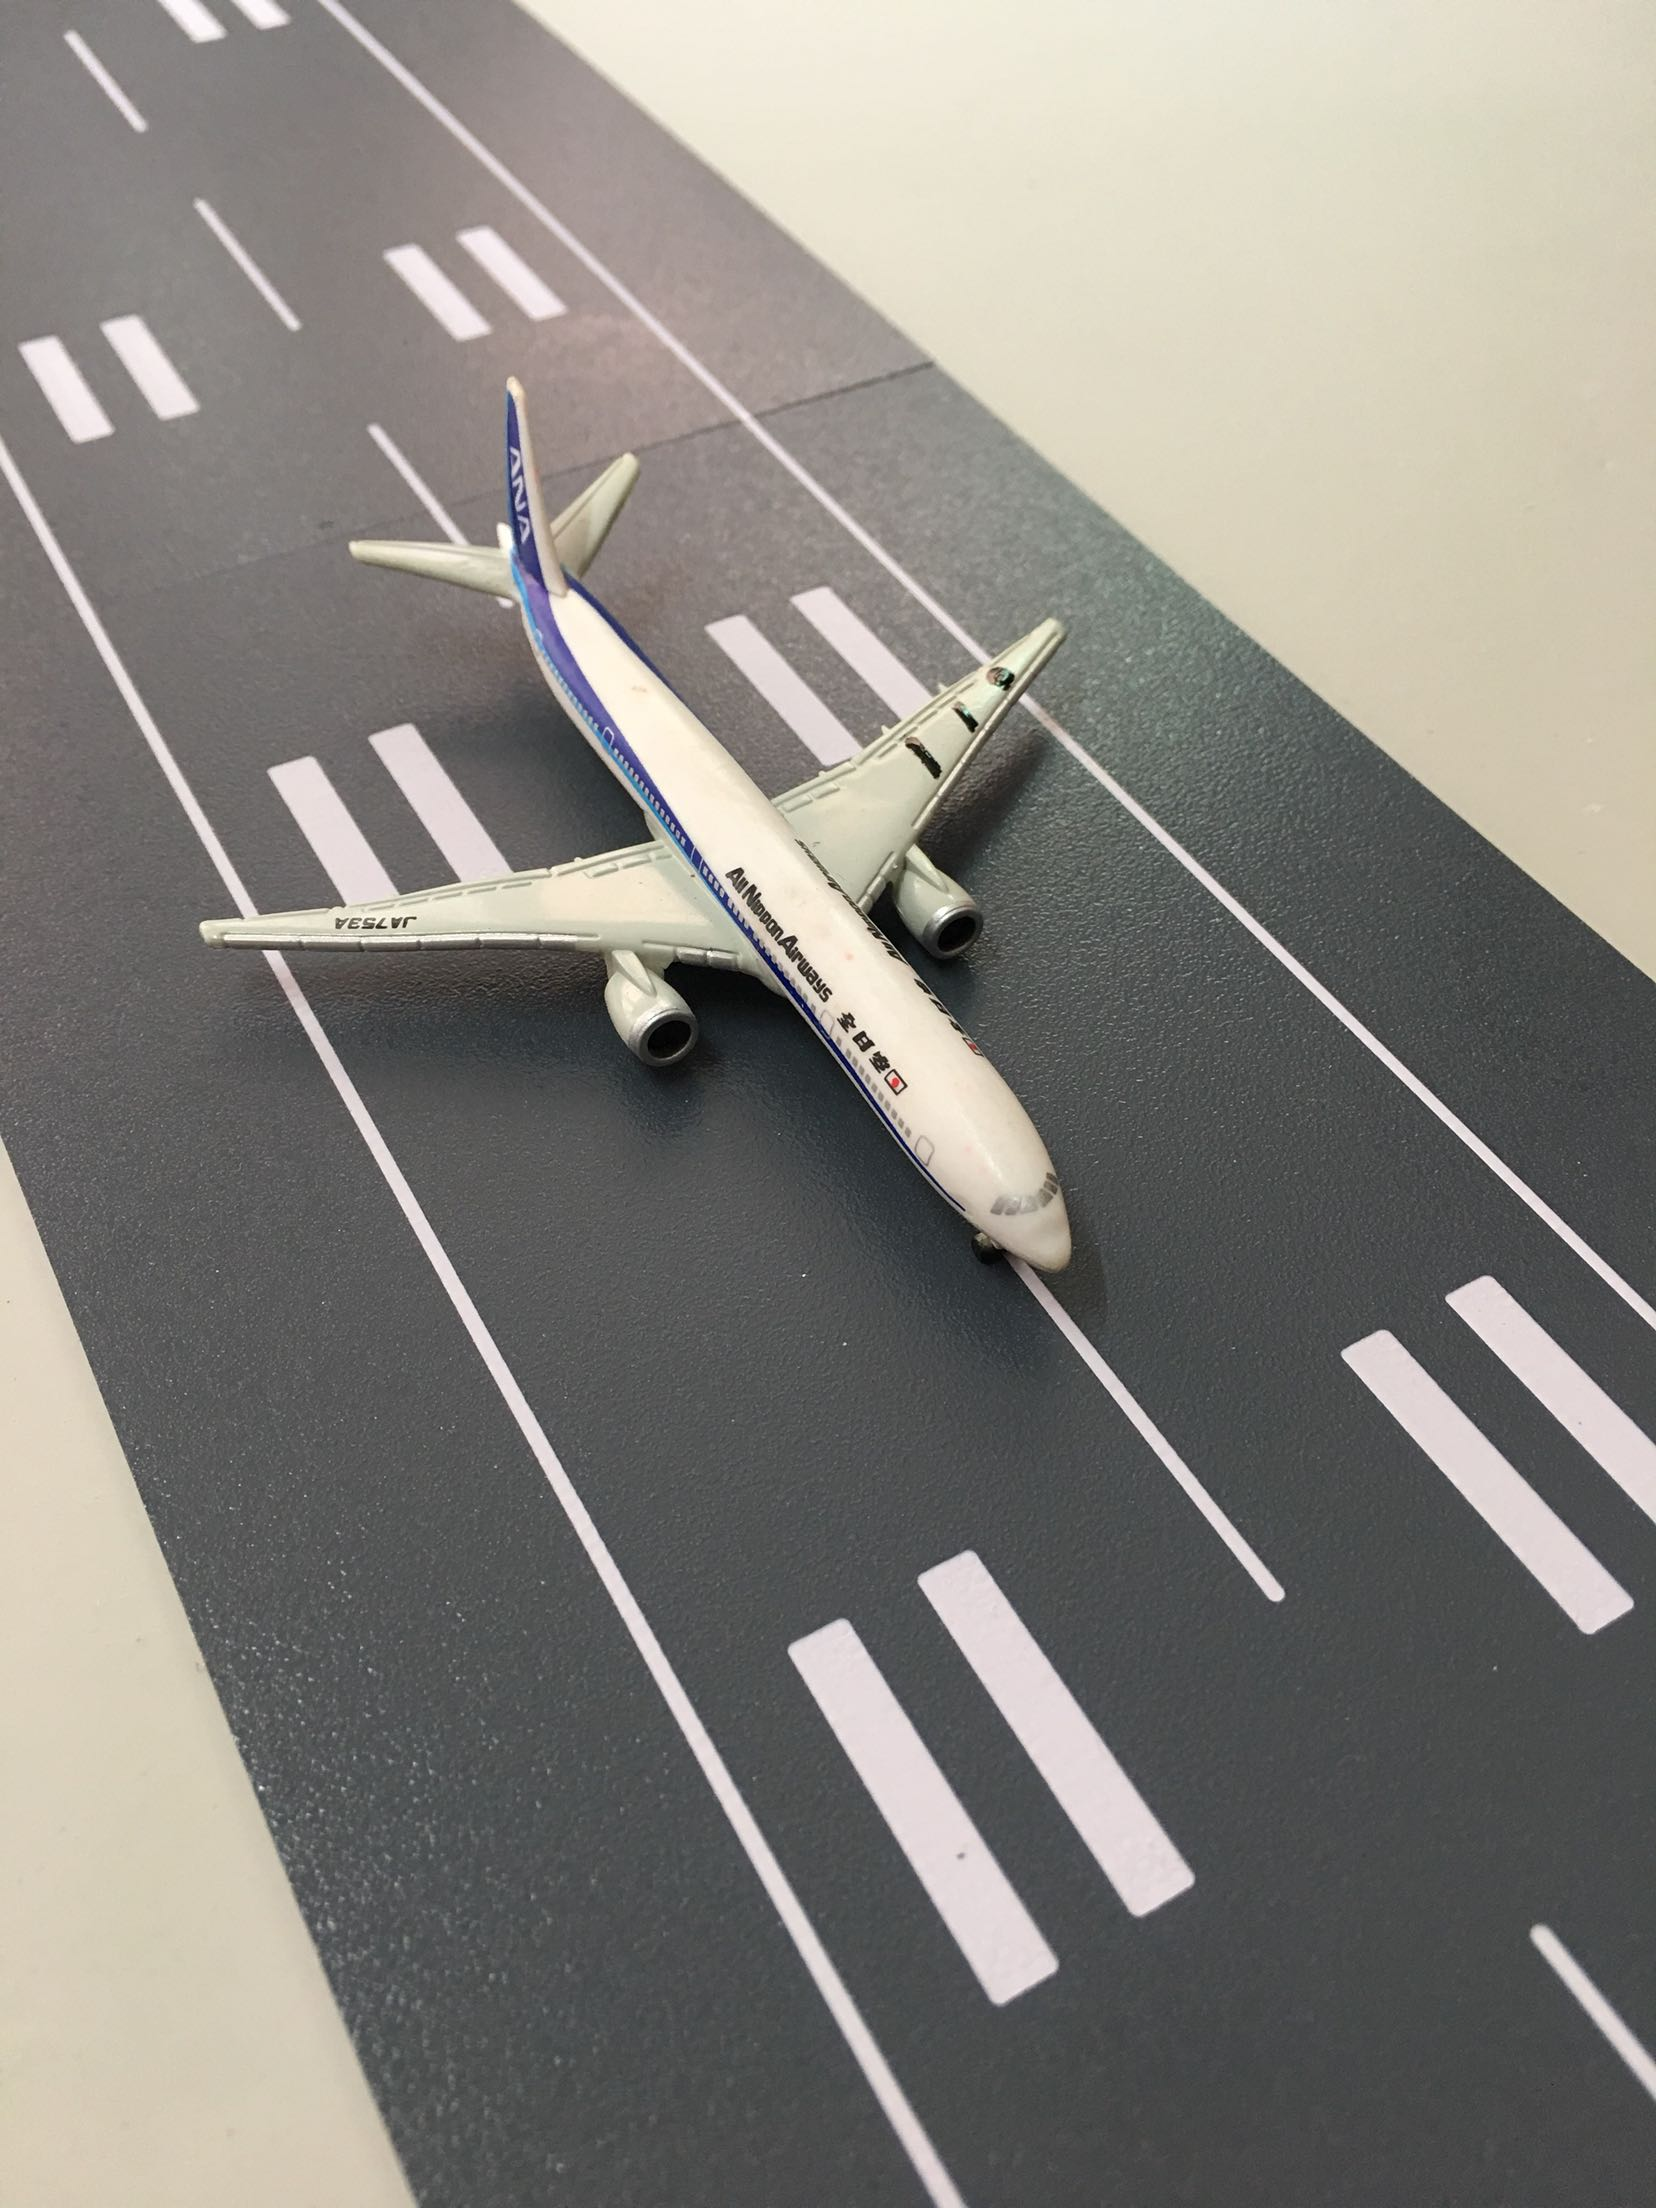 1 1000 Scale Aircraft Model Runway Plastic Road For Flight Takeoff And Landing Sand Table Layout Toys in Model Building Kits from Toys Hobbies